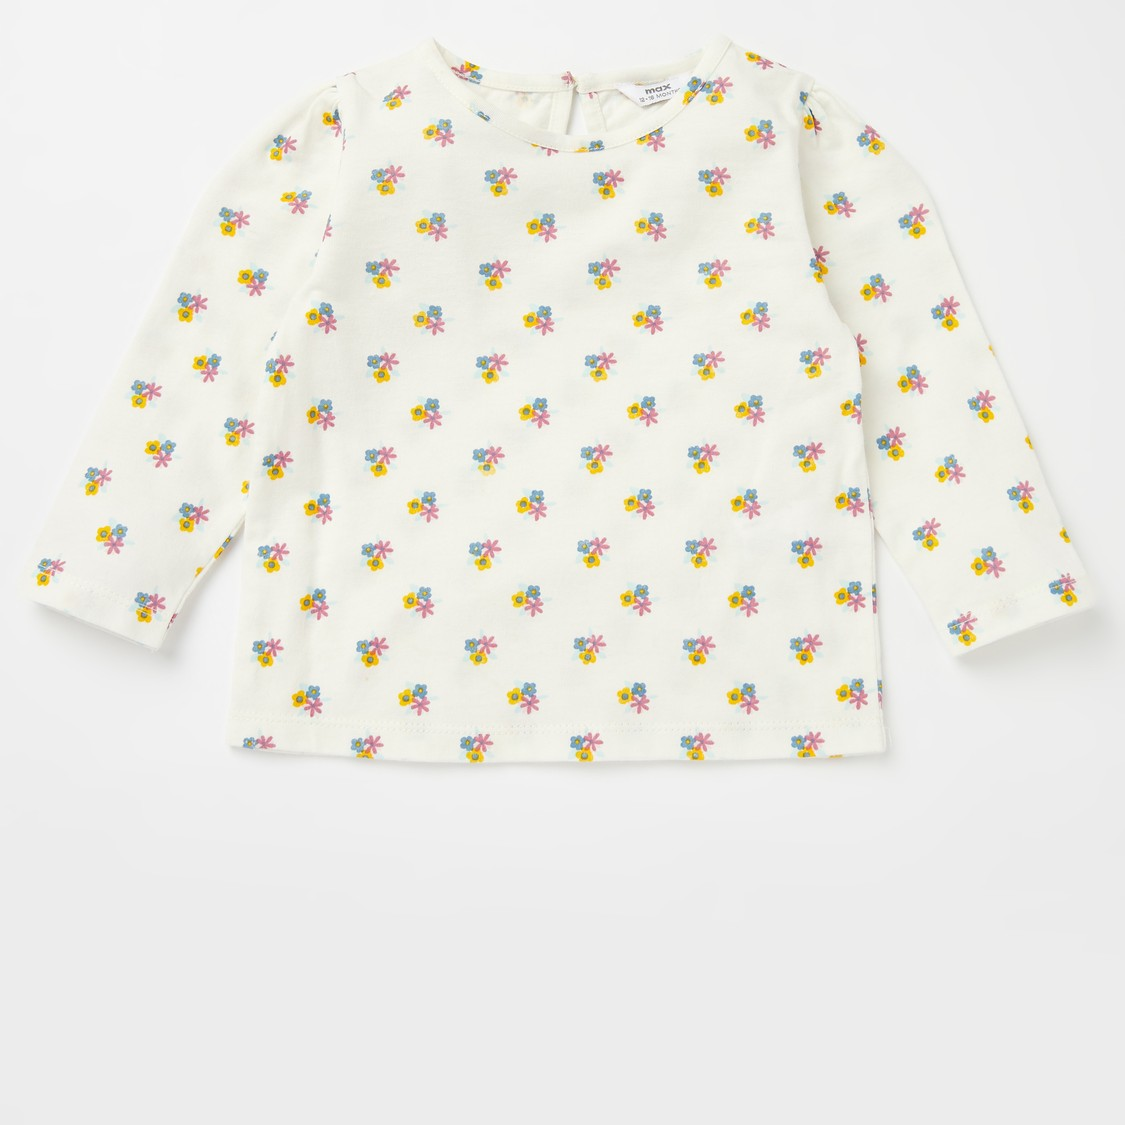 All-Over Print Round Neck T-shirt with Dungarees